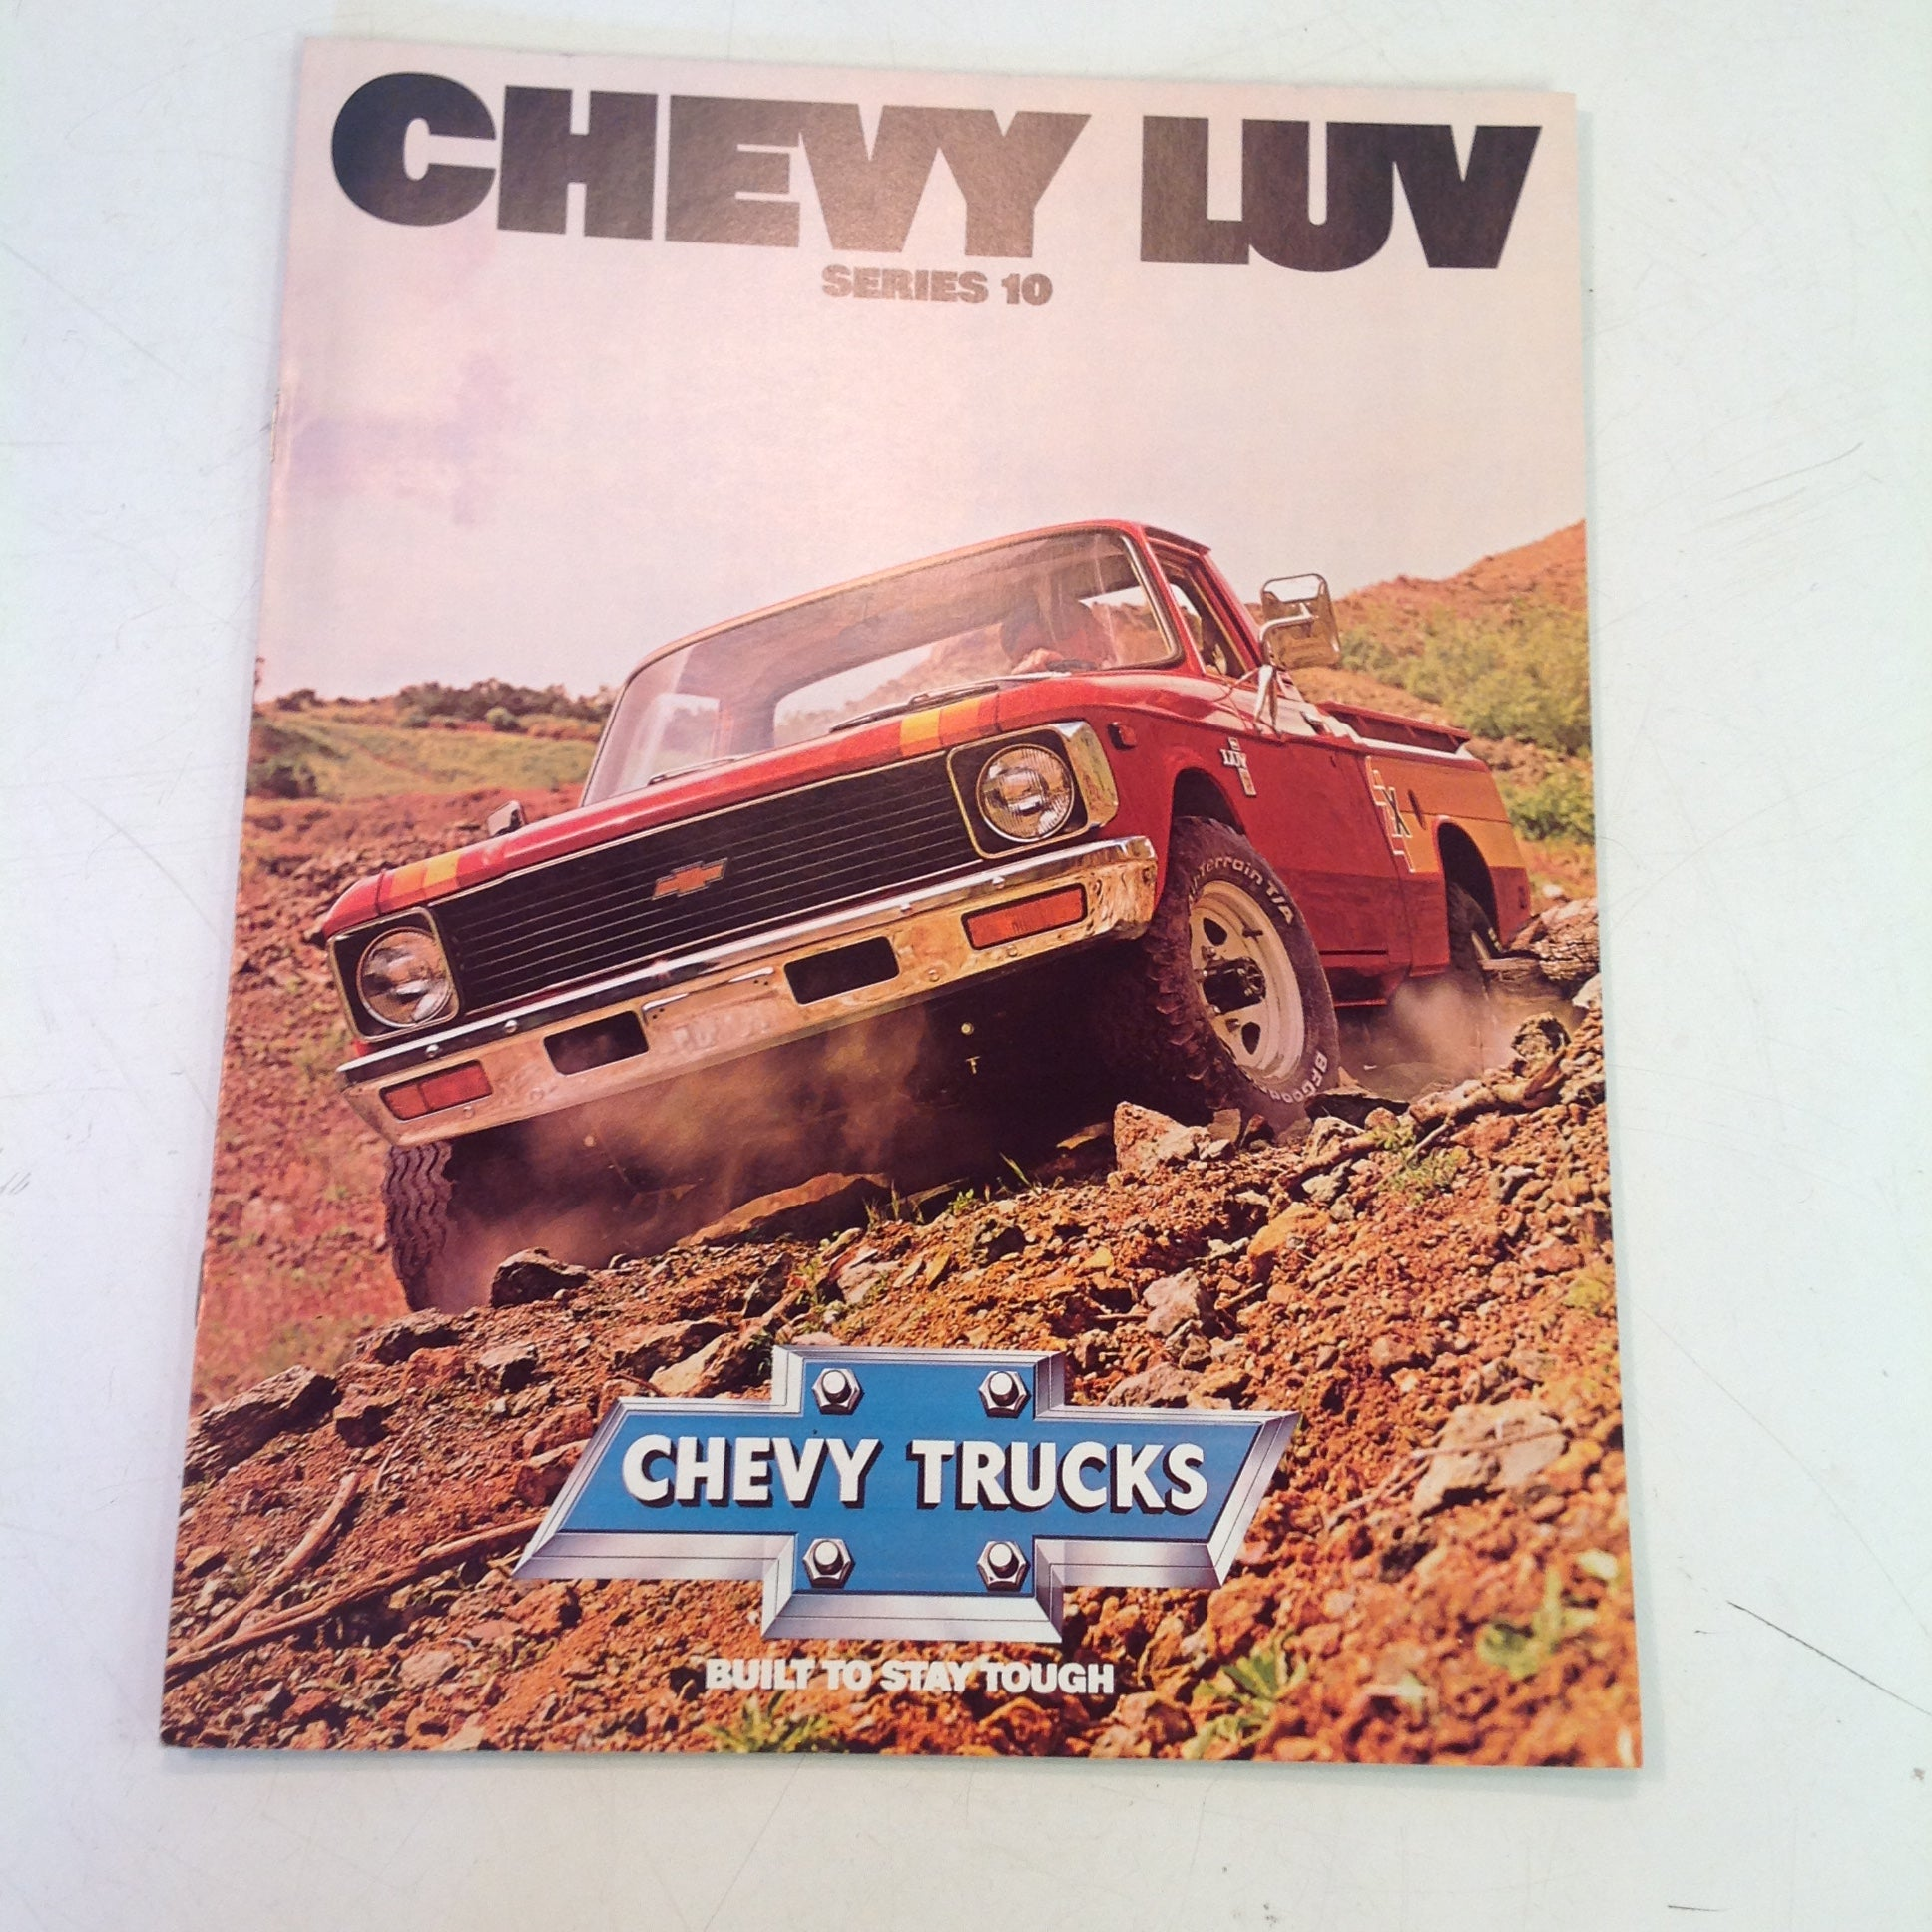 Vintage 1979 Chevrolet CHEVY LUV Series 10 Truck Informational Sales Brochure